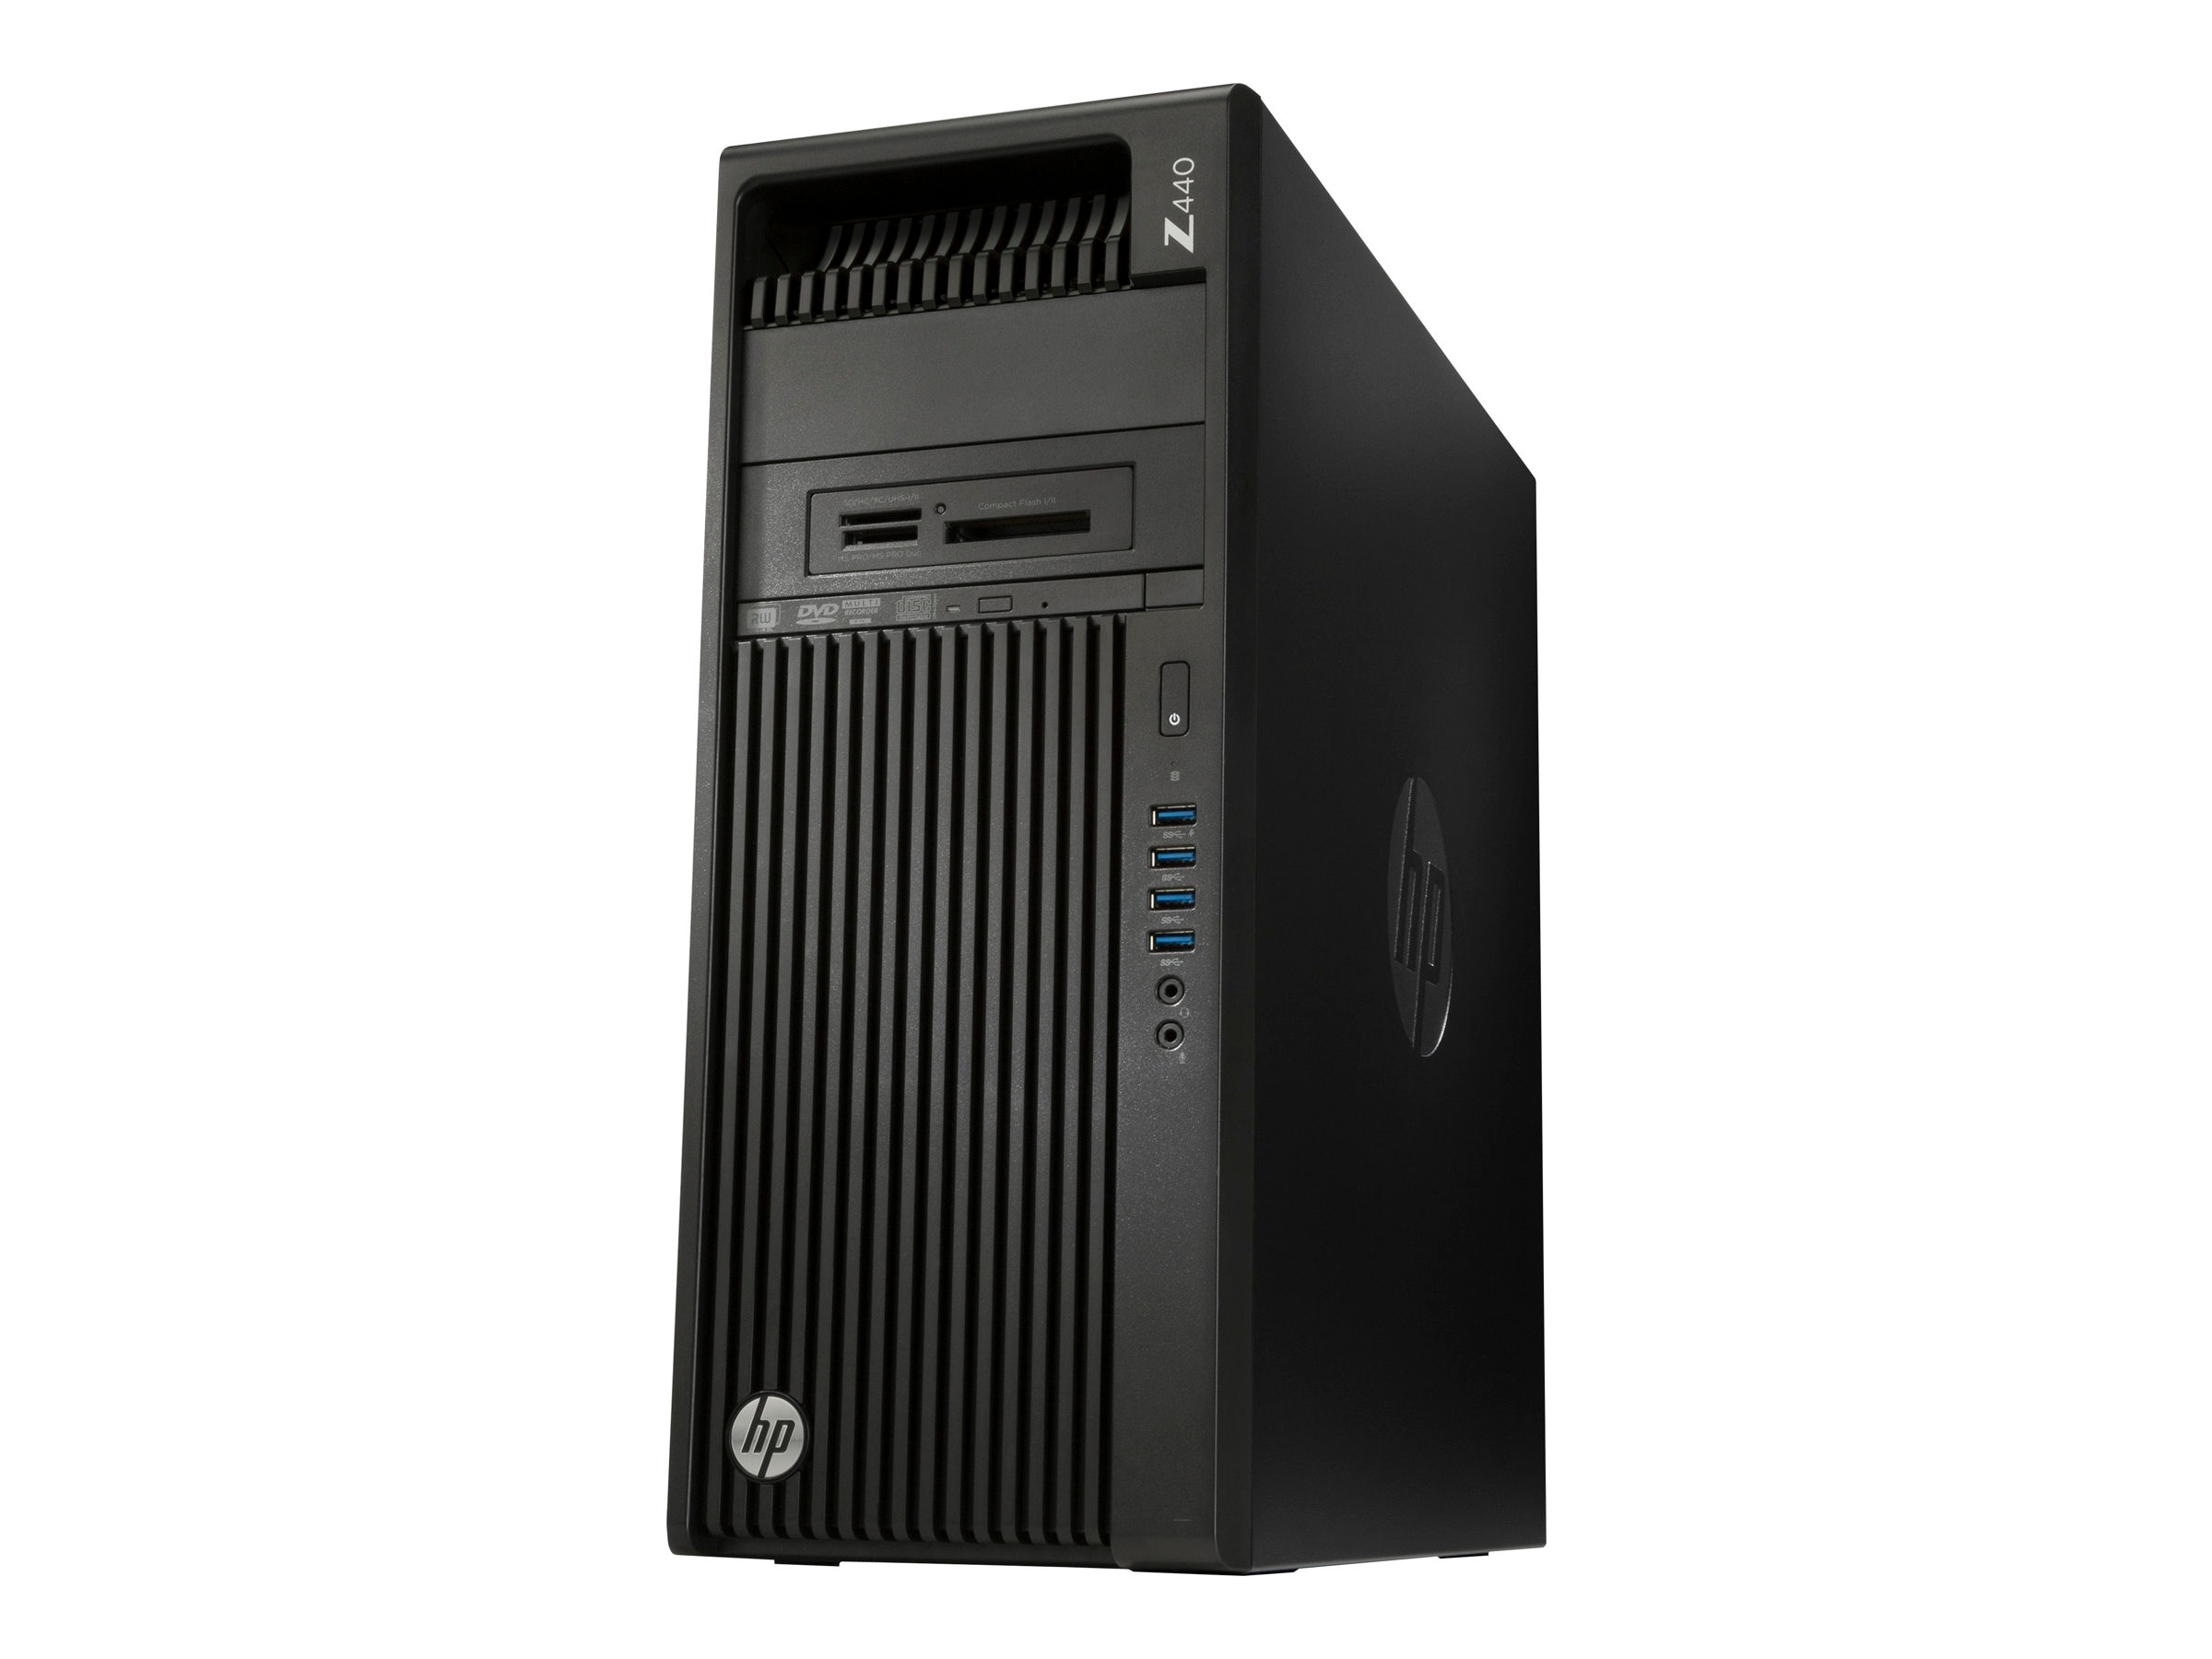 HP Z440 3.7GHz Xeon Microsoft Windows 7 Professional 64-bit Edition   Windows 10 Pro, W9Z09UT#ABA